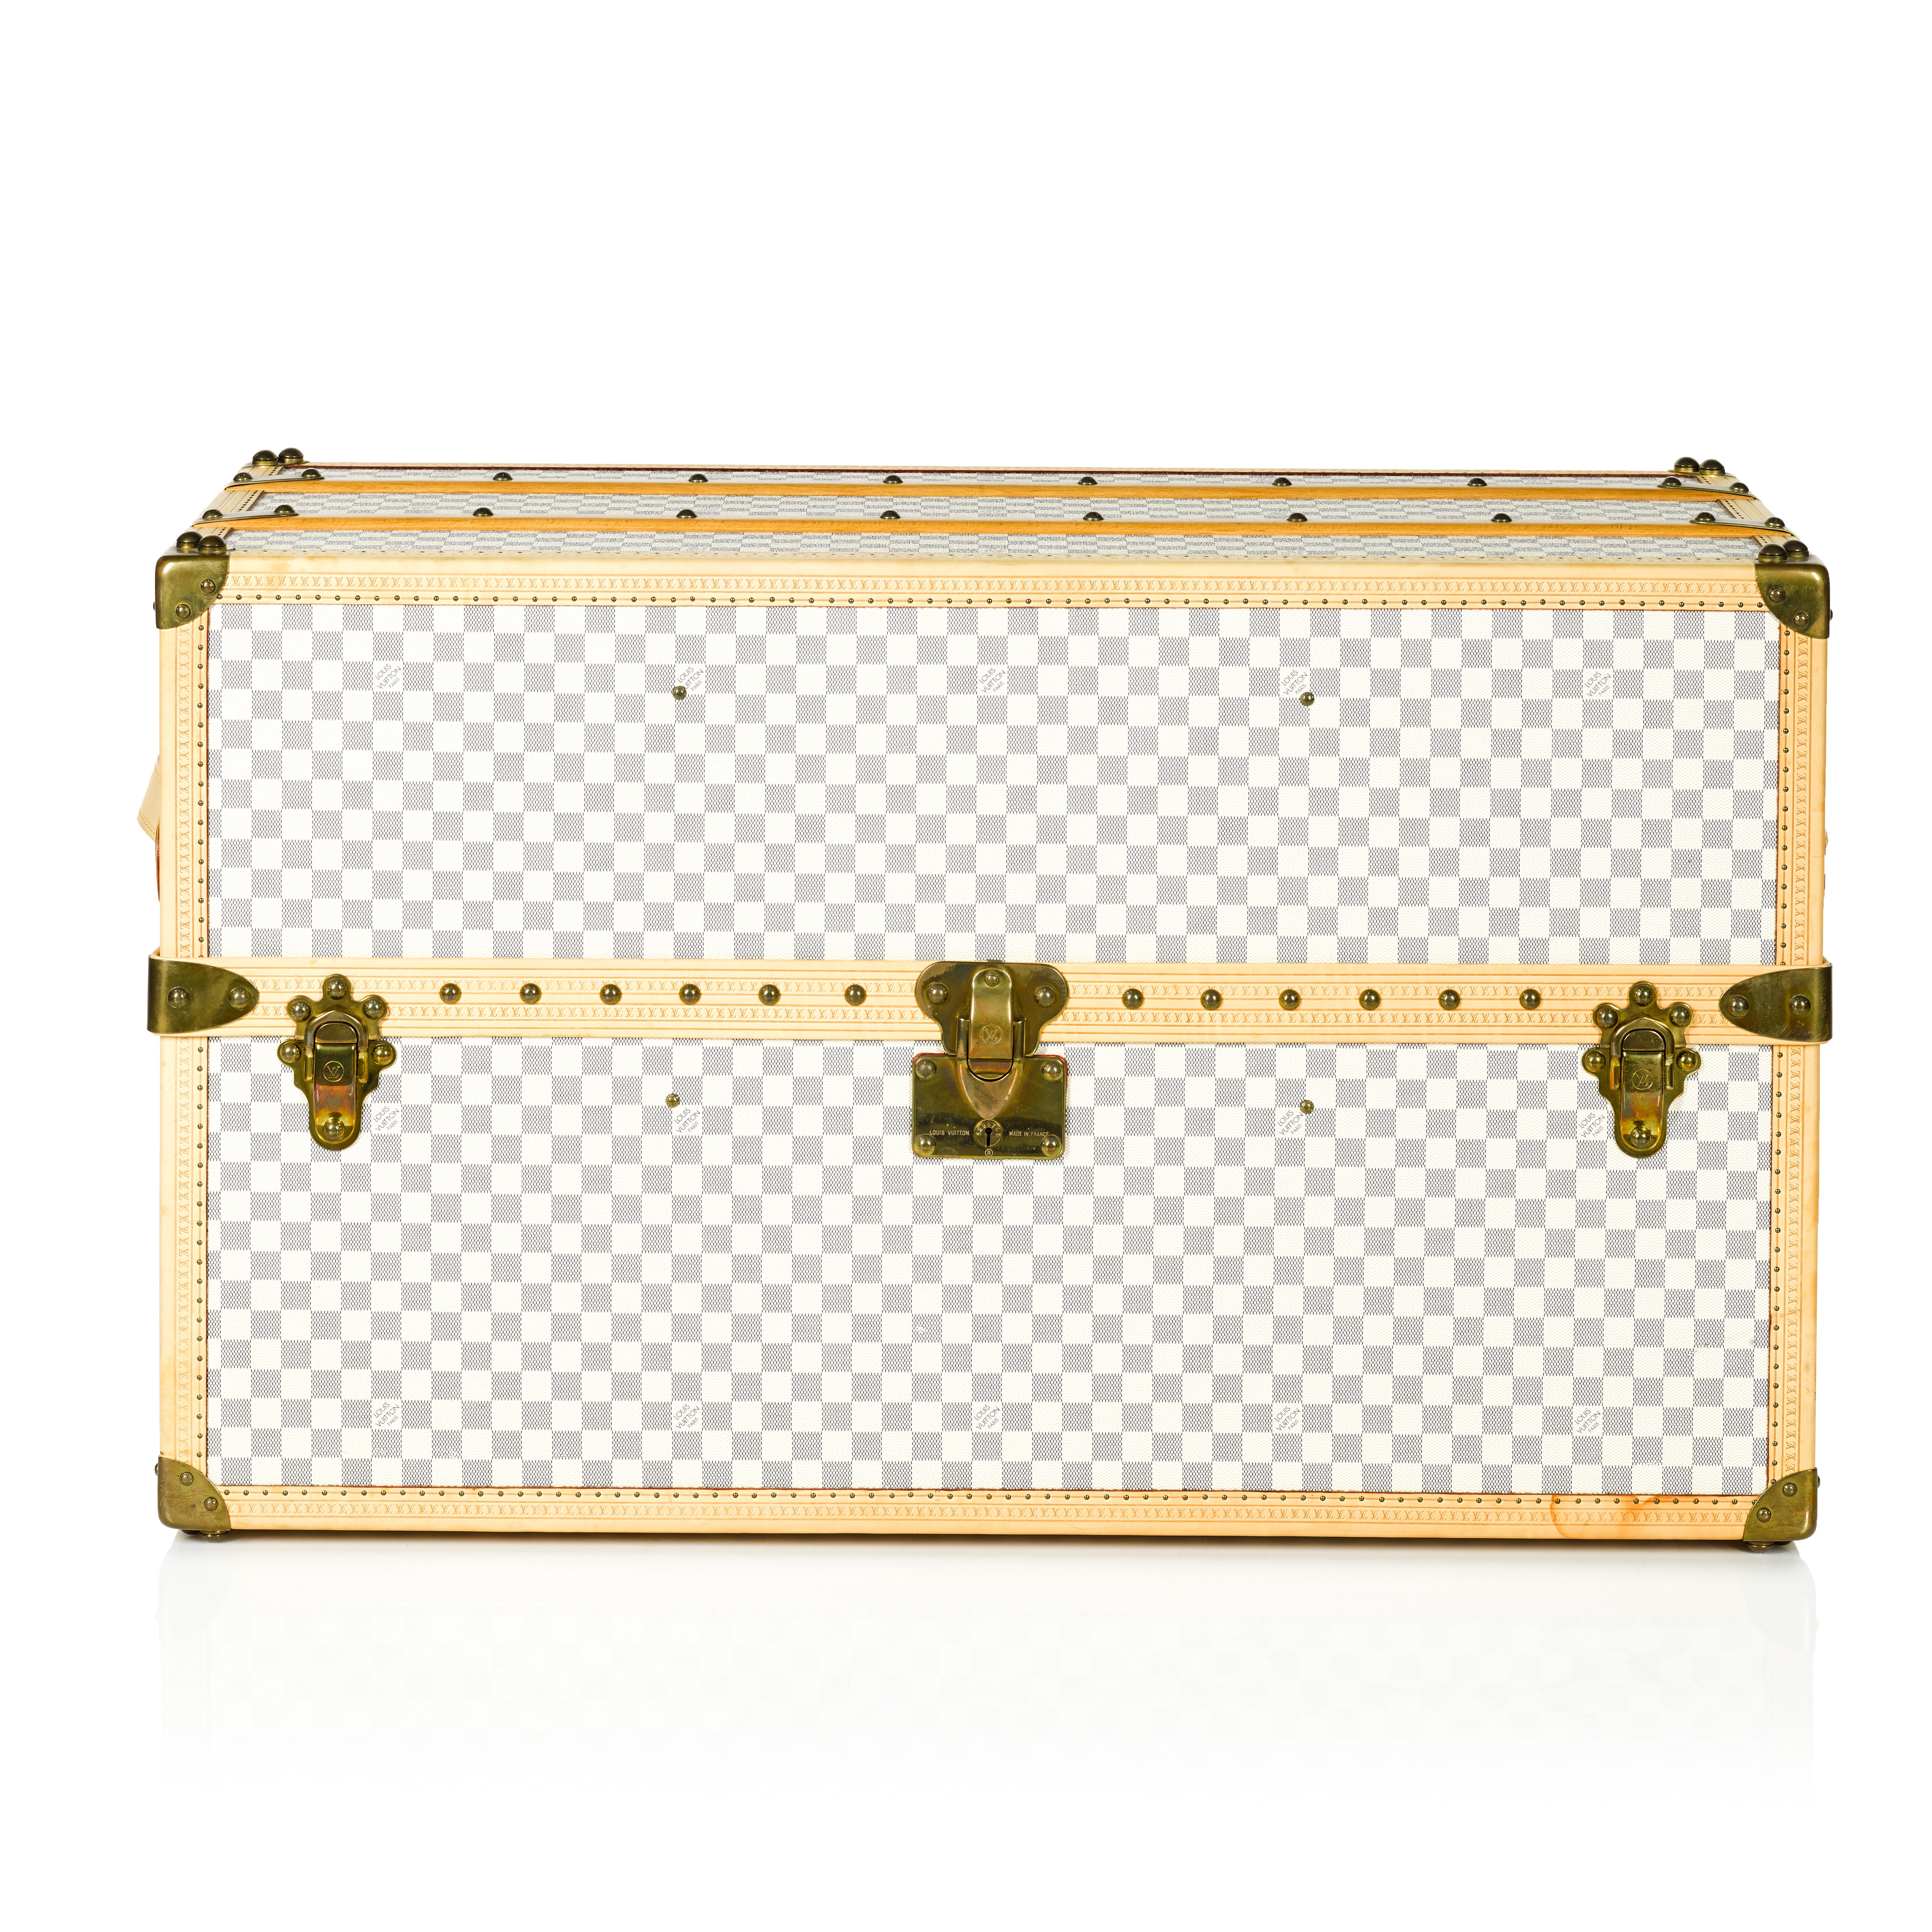 View full screen - View 1 of Lot 61. 'Malle Lit' Damier Azur Bed Trunk, 2007.